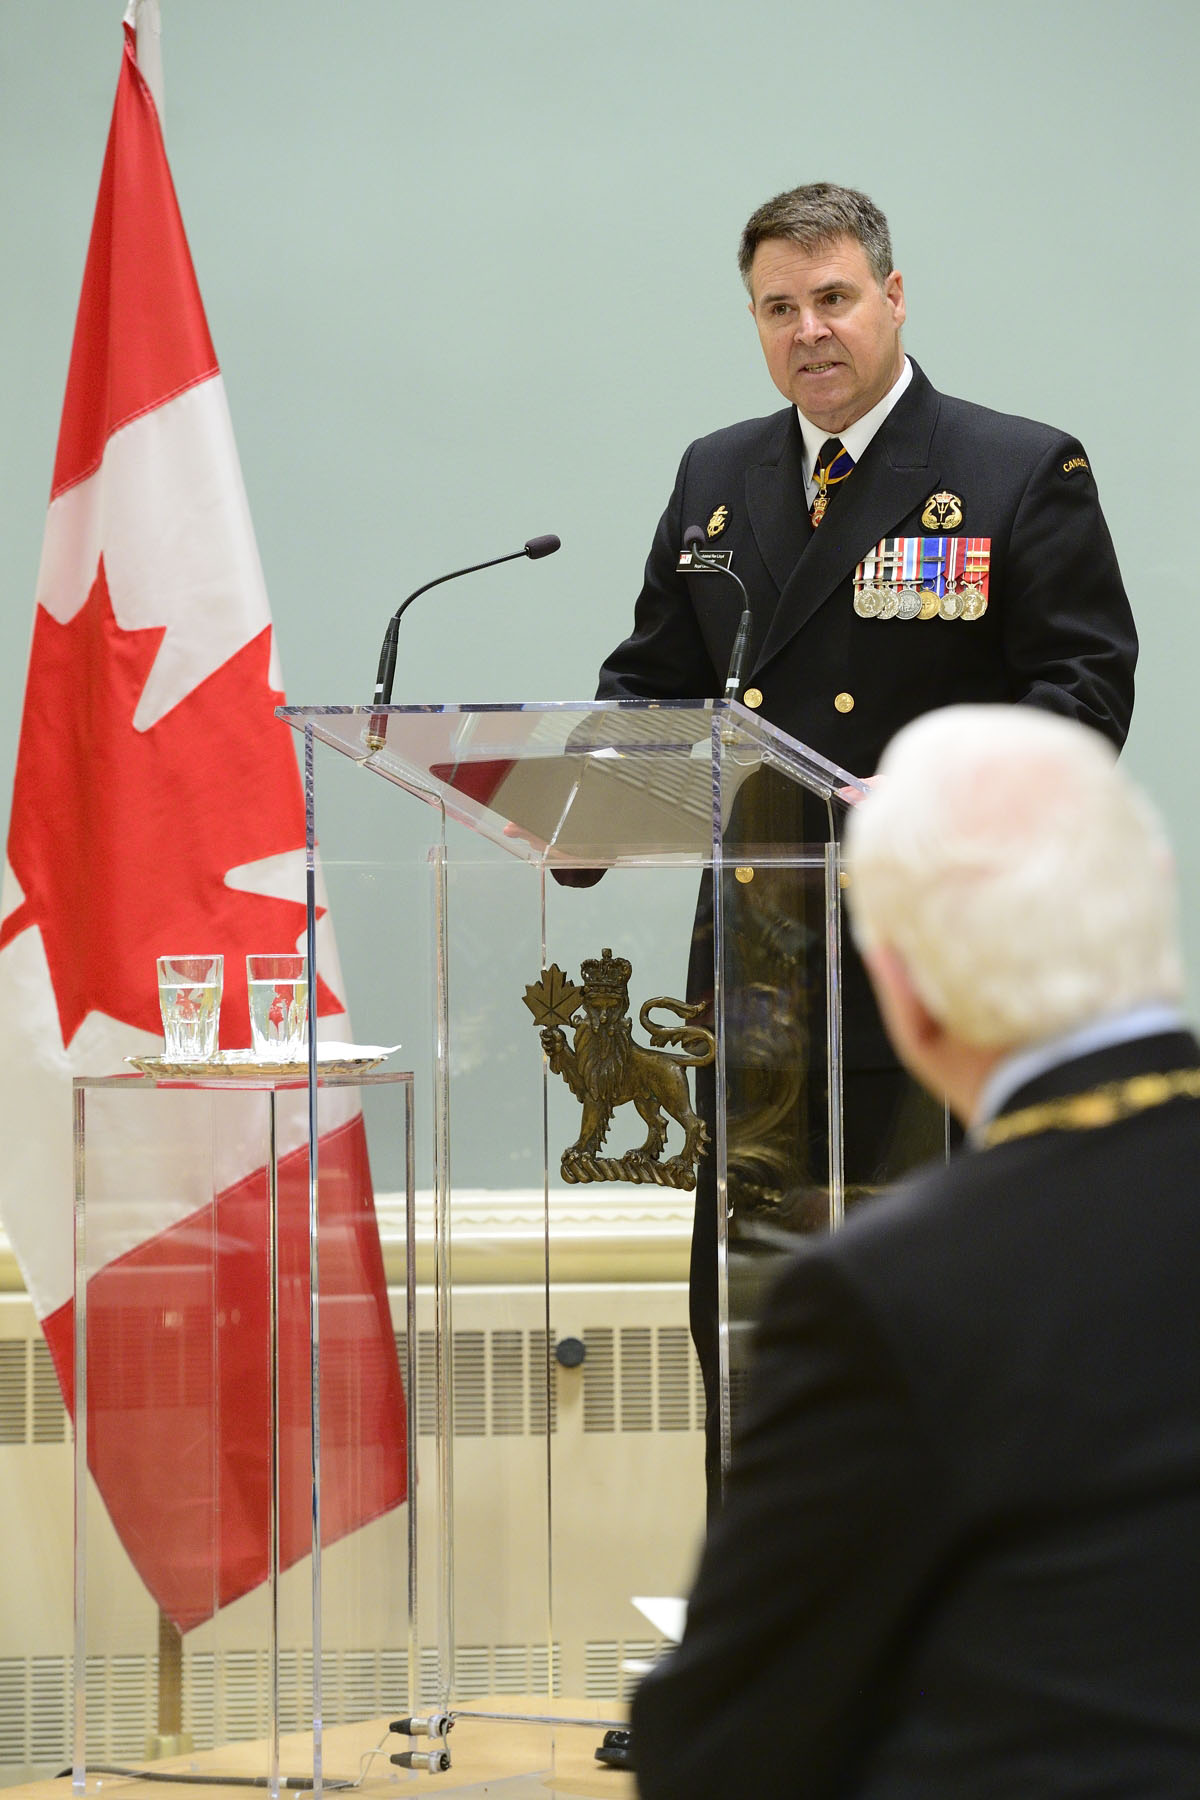 Vice-Admiral Lloyd, Acting Vice Chief of Defence staff and Commander of the Royal Canadian Navy, also spoke during the ceremony.